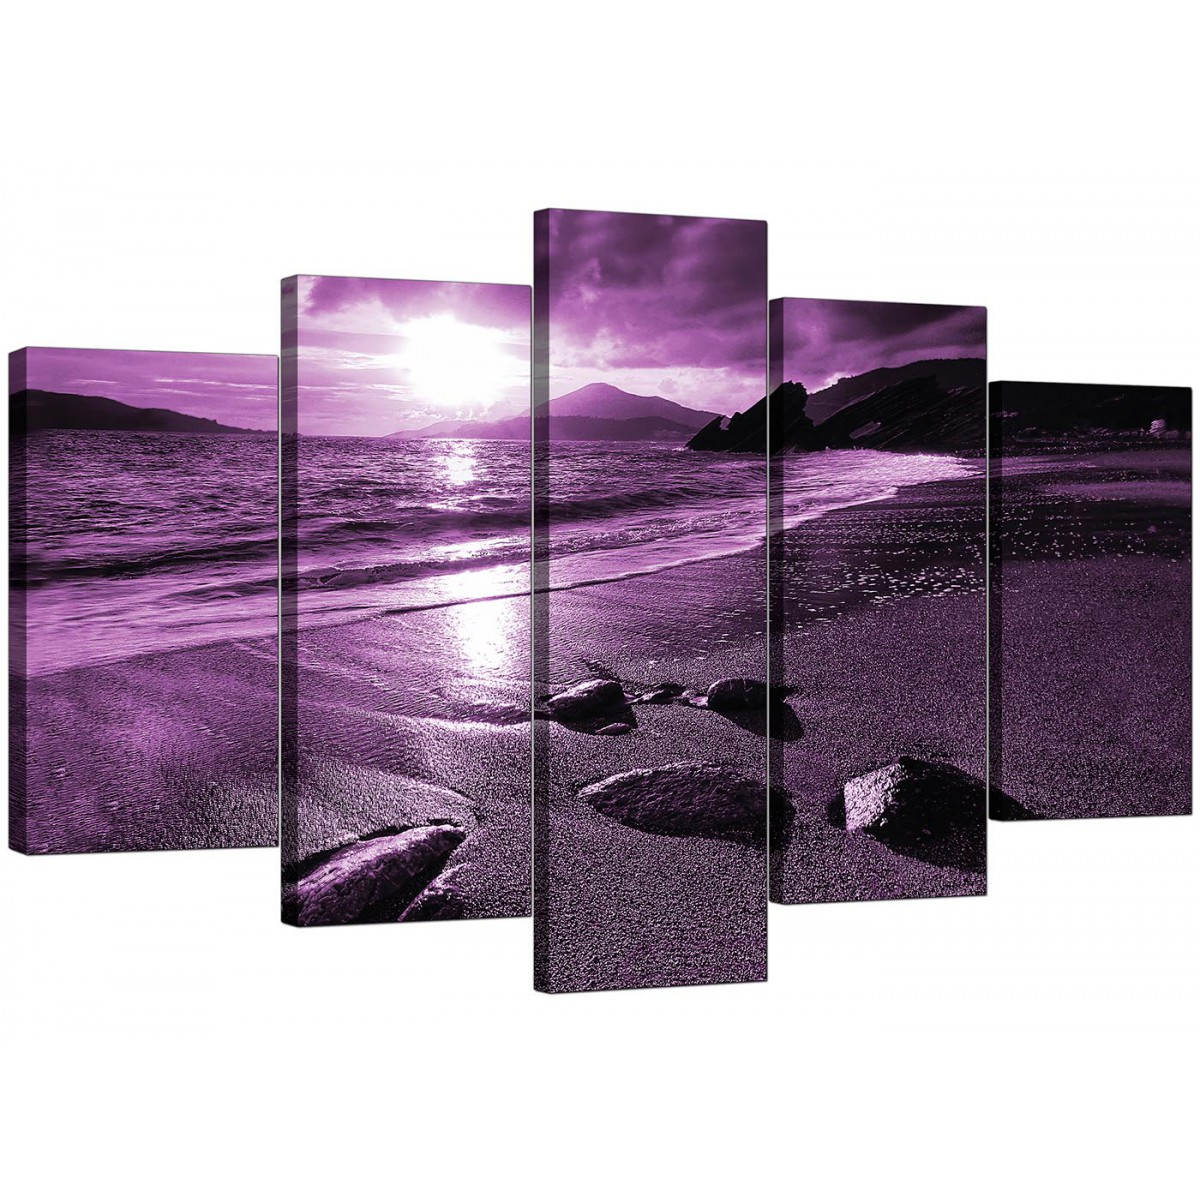 extra large sunset canvas art 5 part in purple. Black Bedroom Furniture Sets. Home Design Ideas